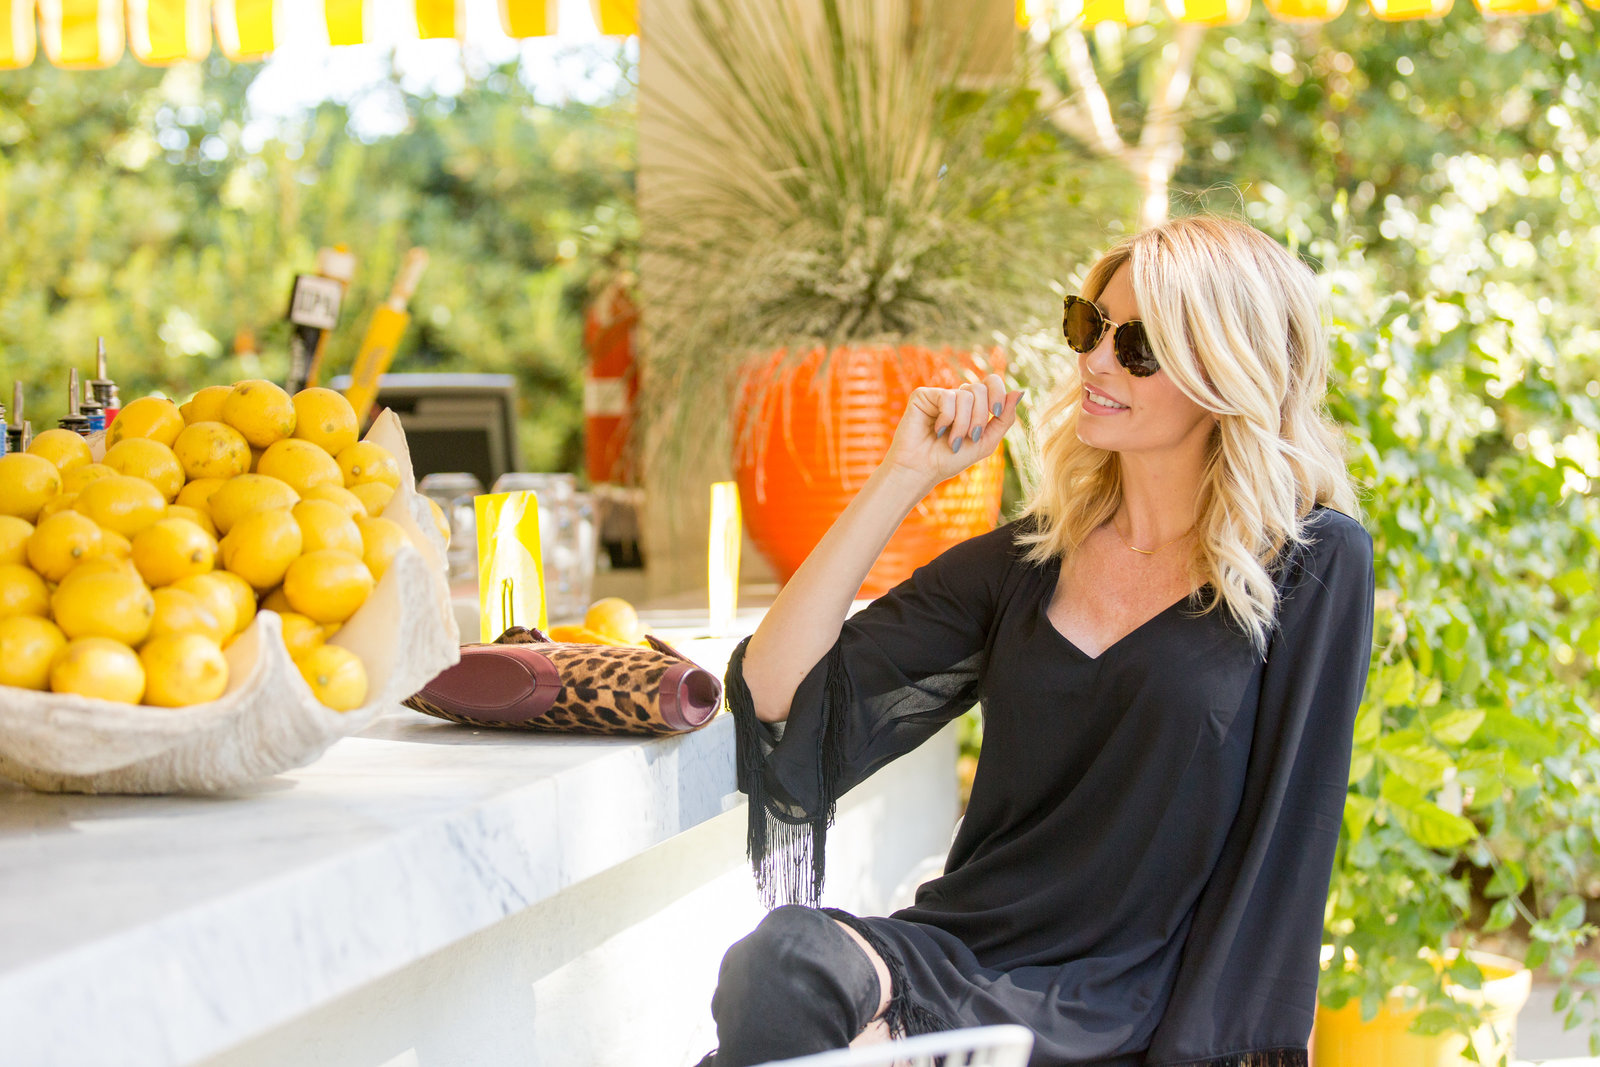 Lifestyle Fashion with Lyndi in the City, Palm Springs Photographer Erica Mendenhall